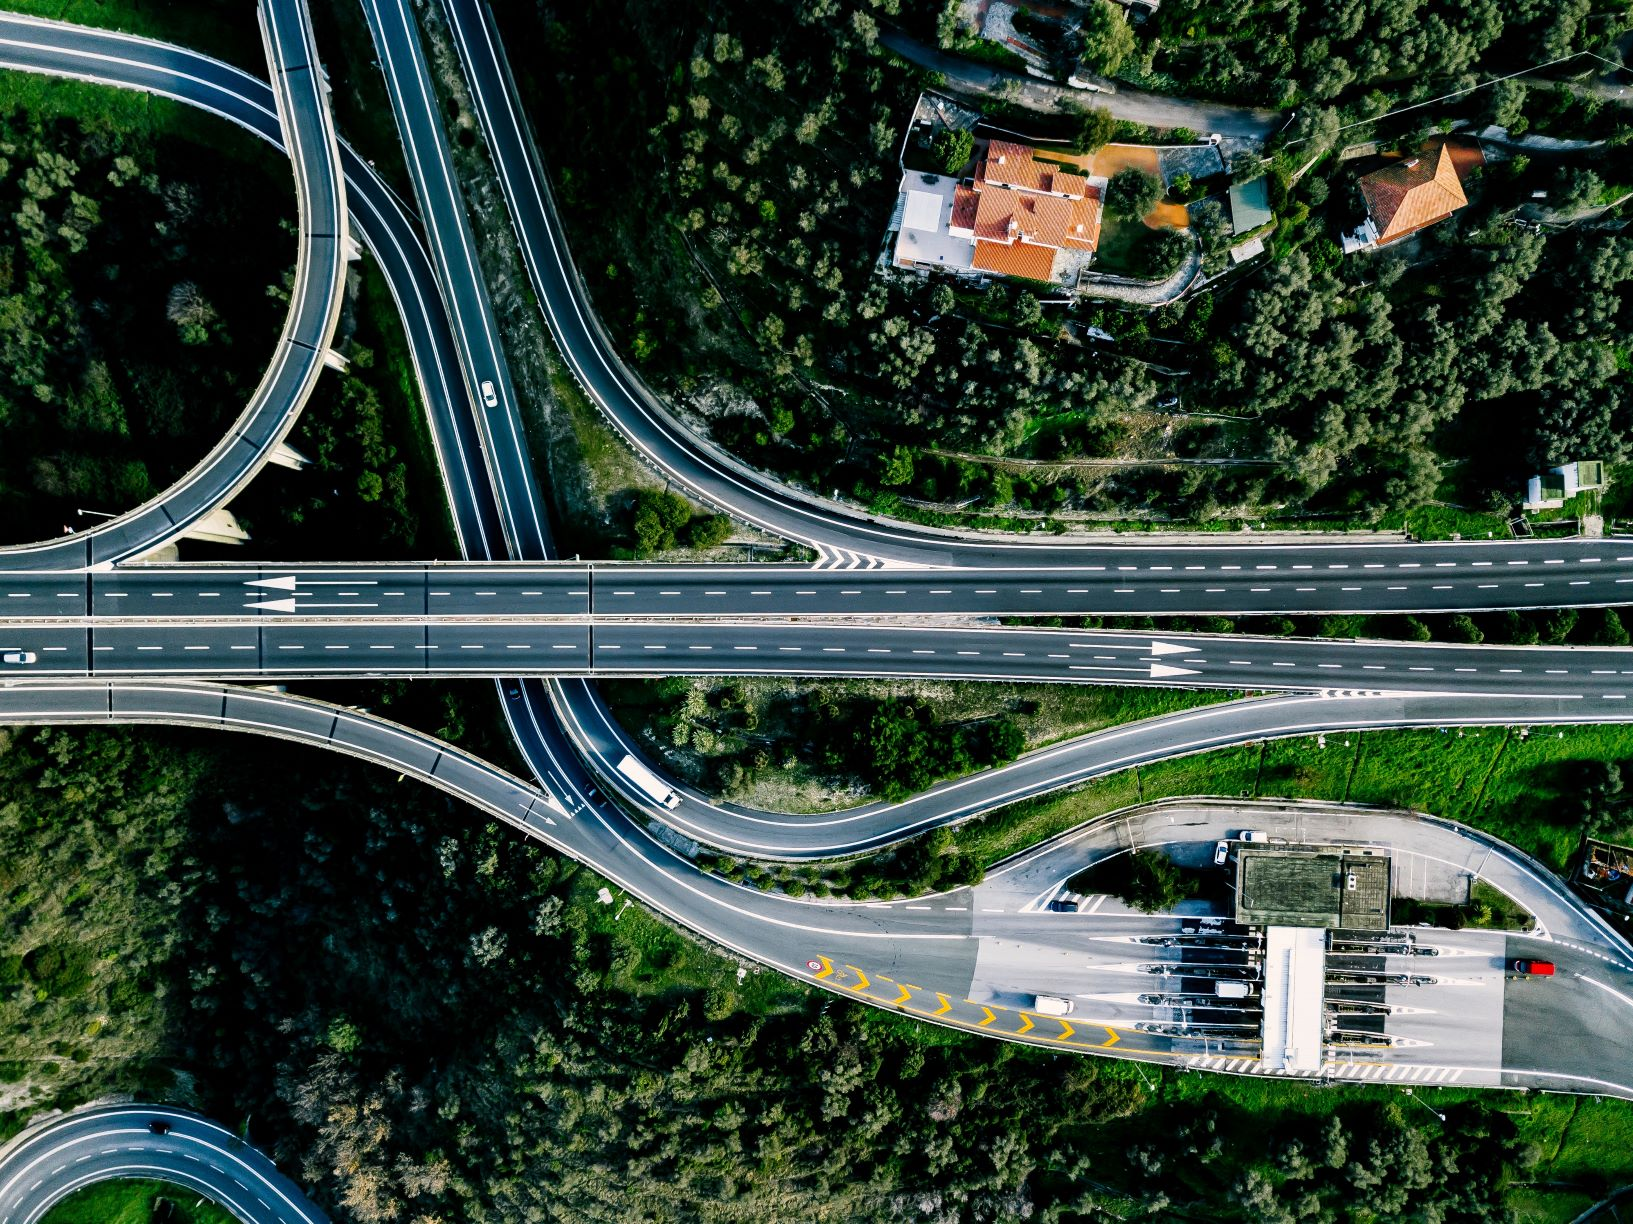 highway shot from above